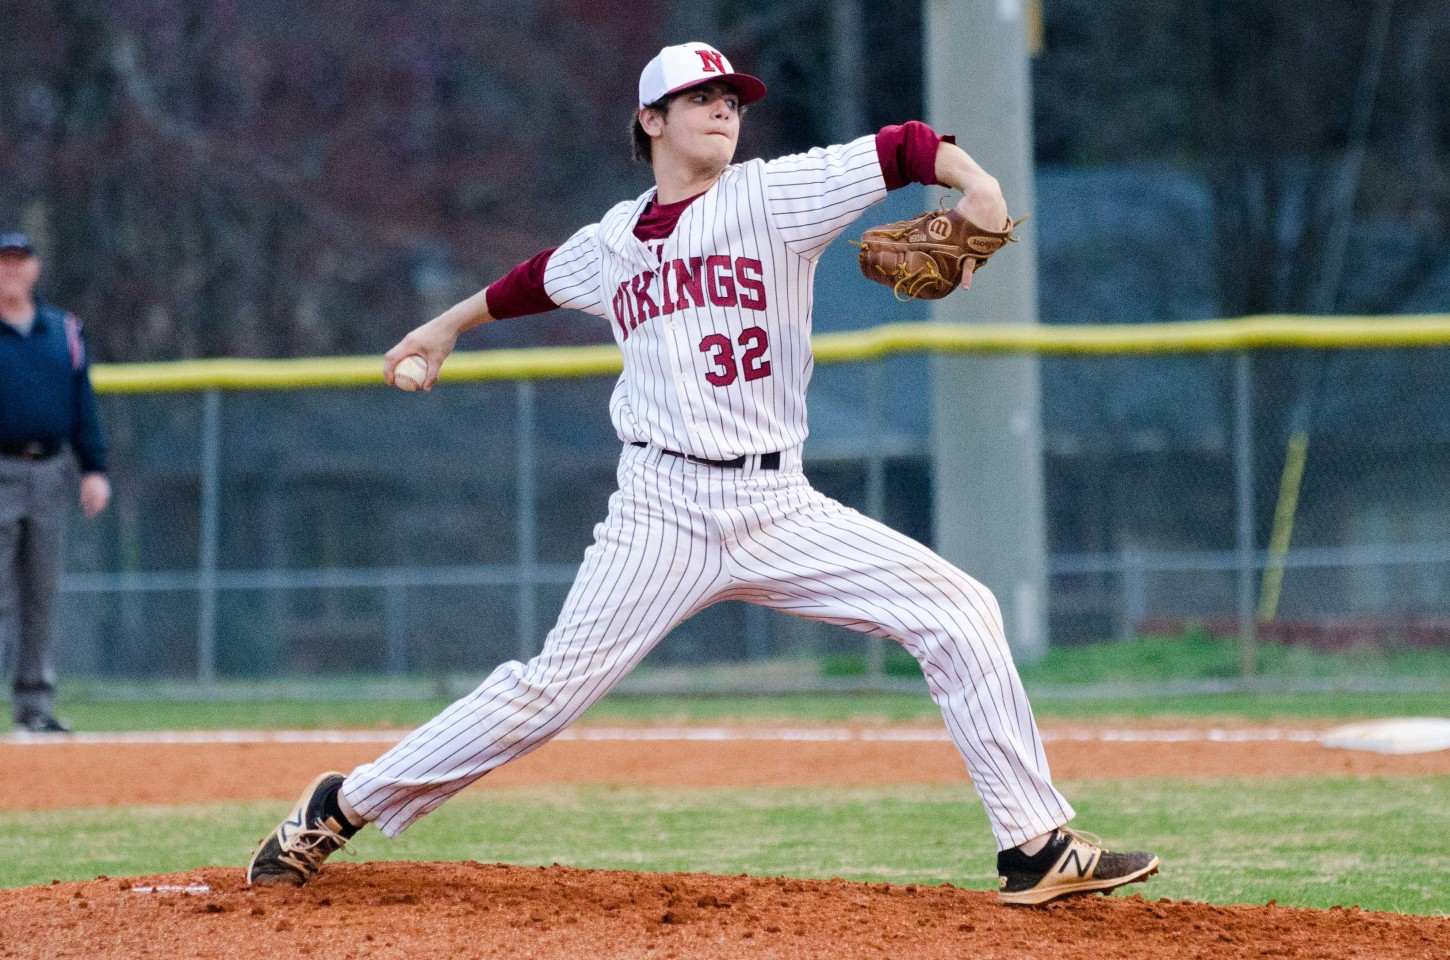 Ryder Willard struck out a team-high 74 batters for Northgate in his sophomore season.